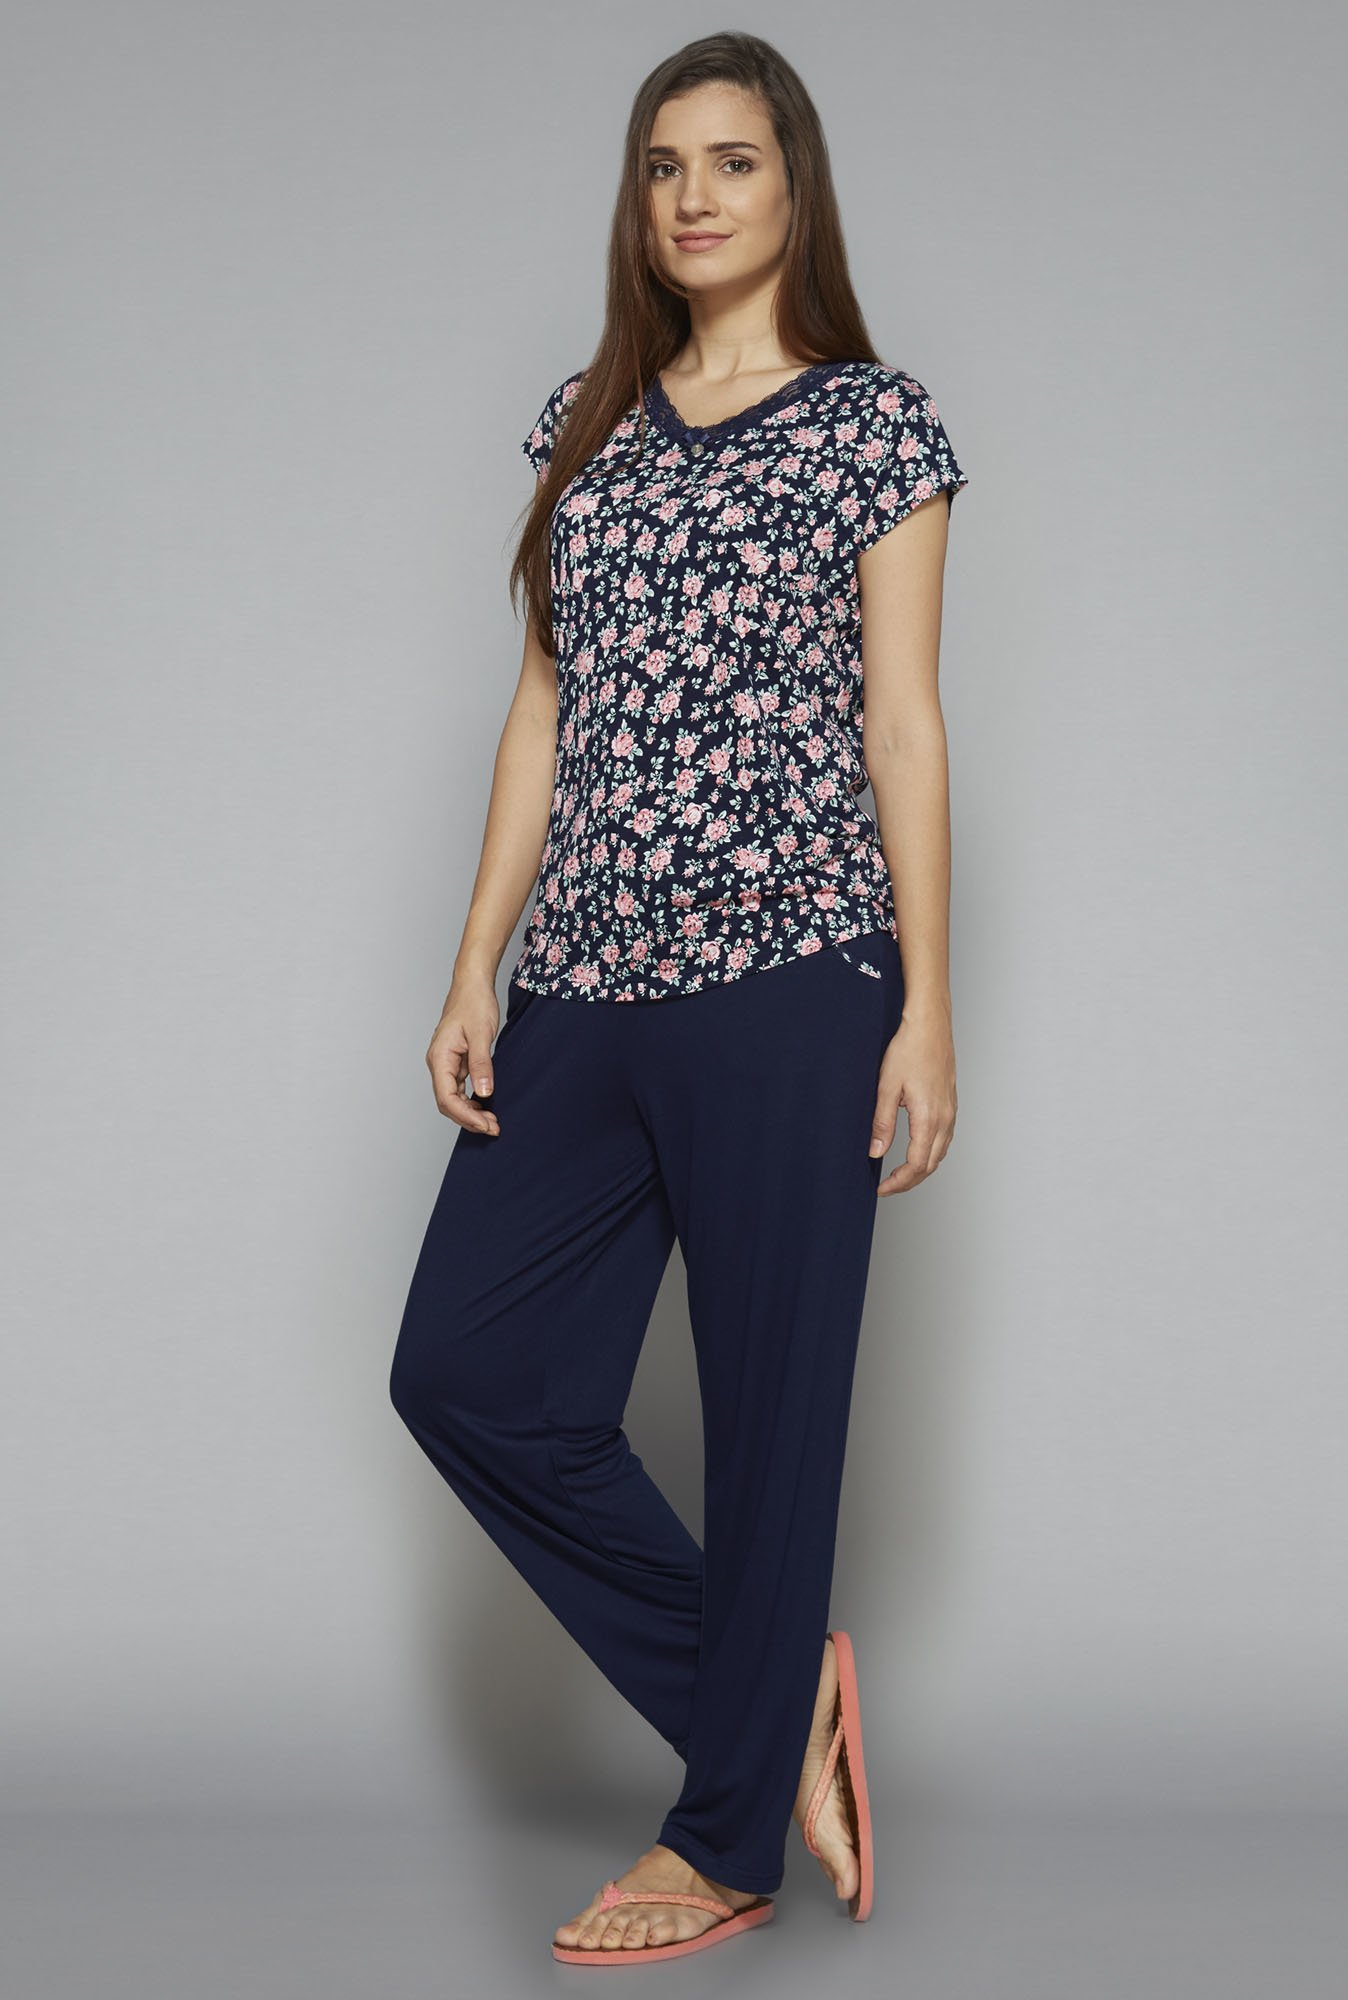 Intima by Westside Navy Floral Print Pyjama Set